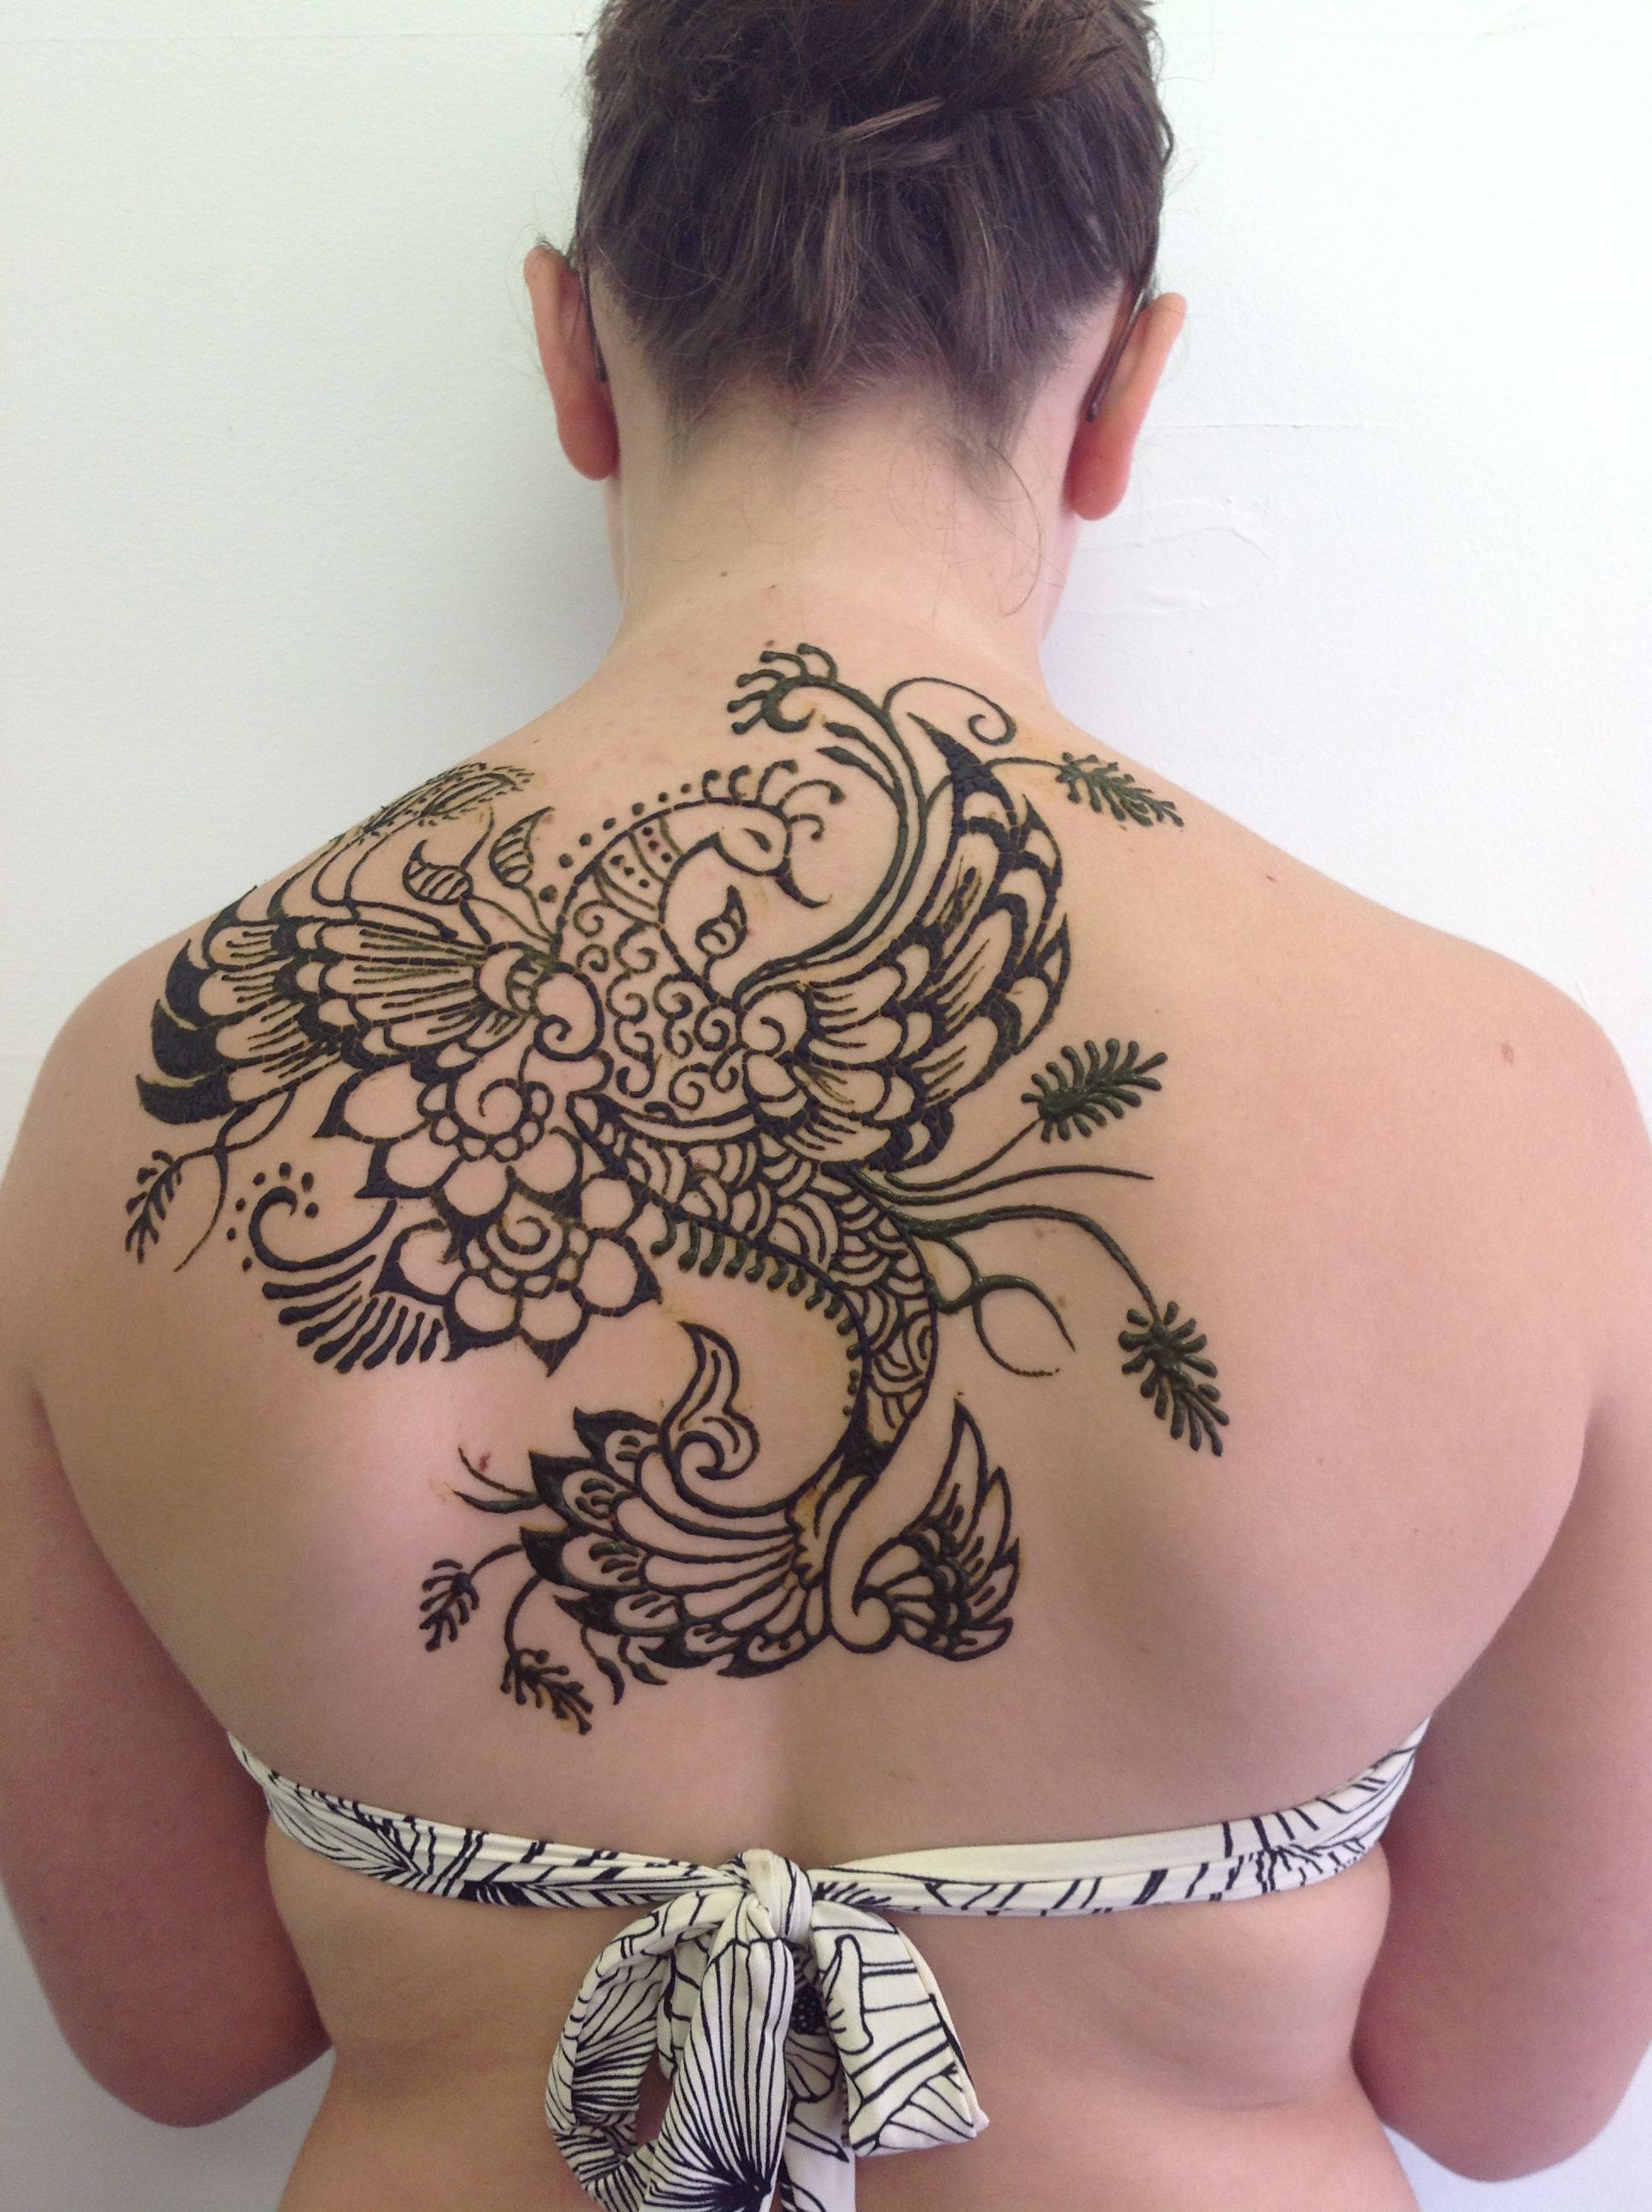 Inflicting Ink Tattoo Henna Themed Tattoos: Peacock Henna Tattoo :) I Got This Done At Grand Bend